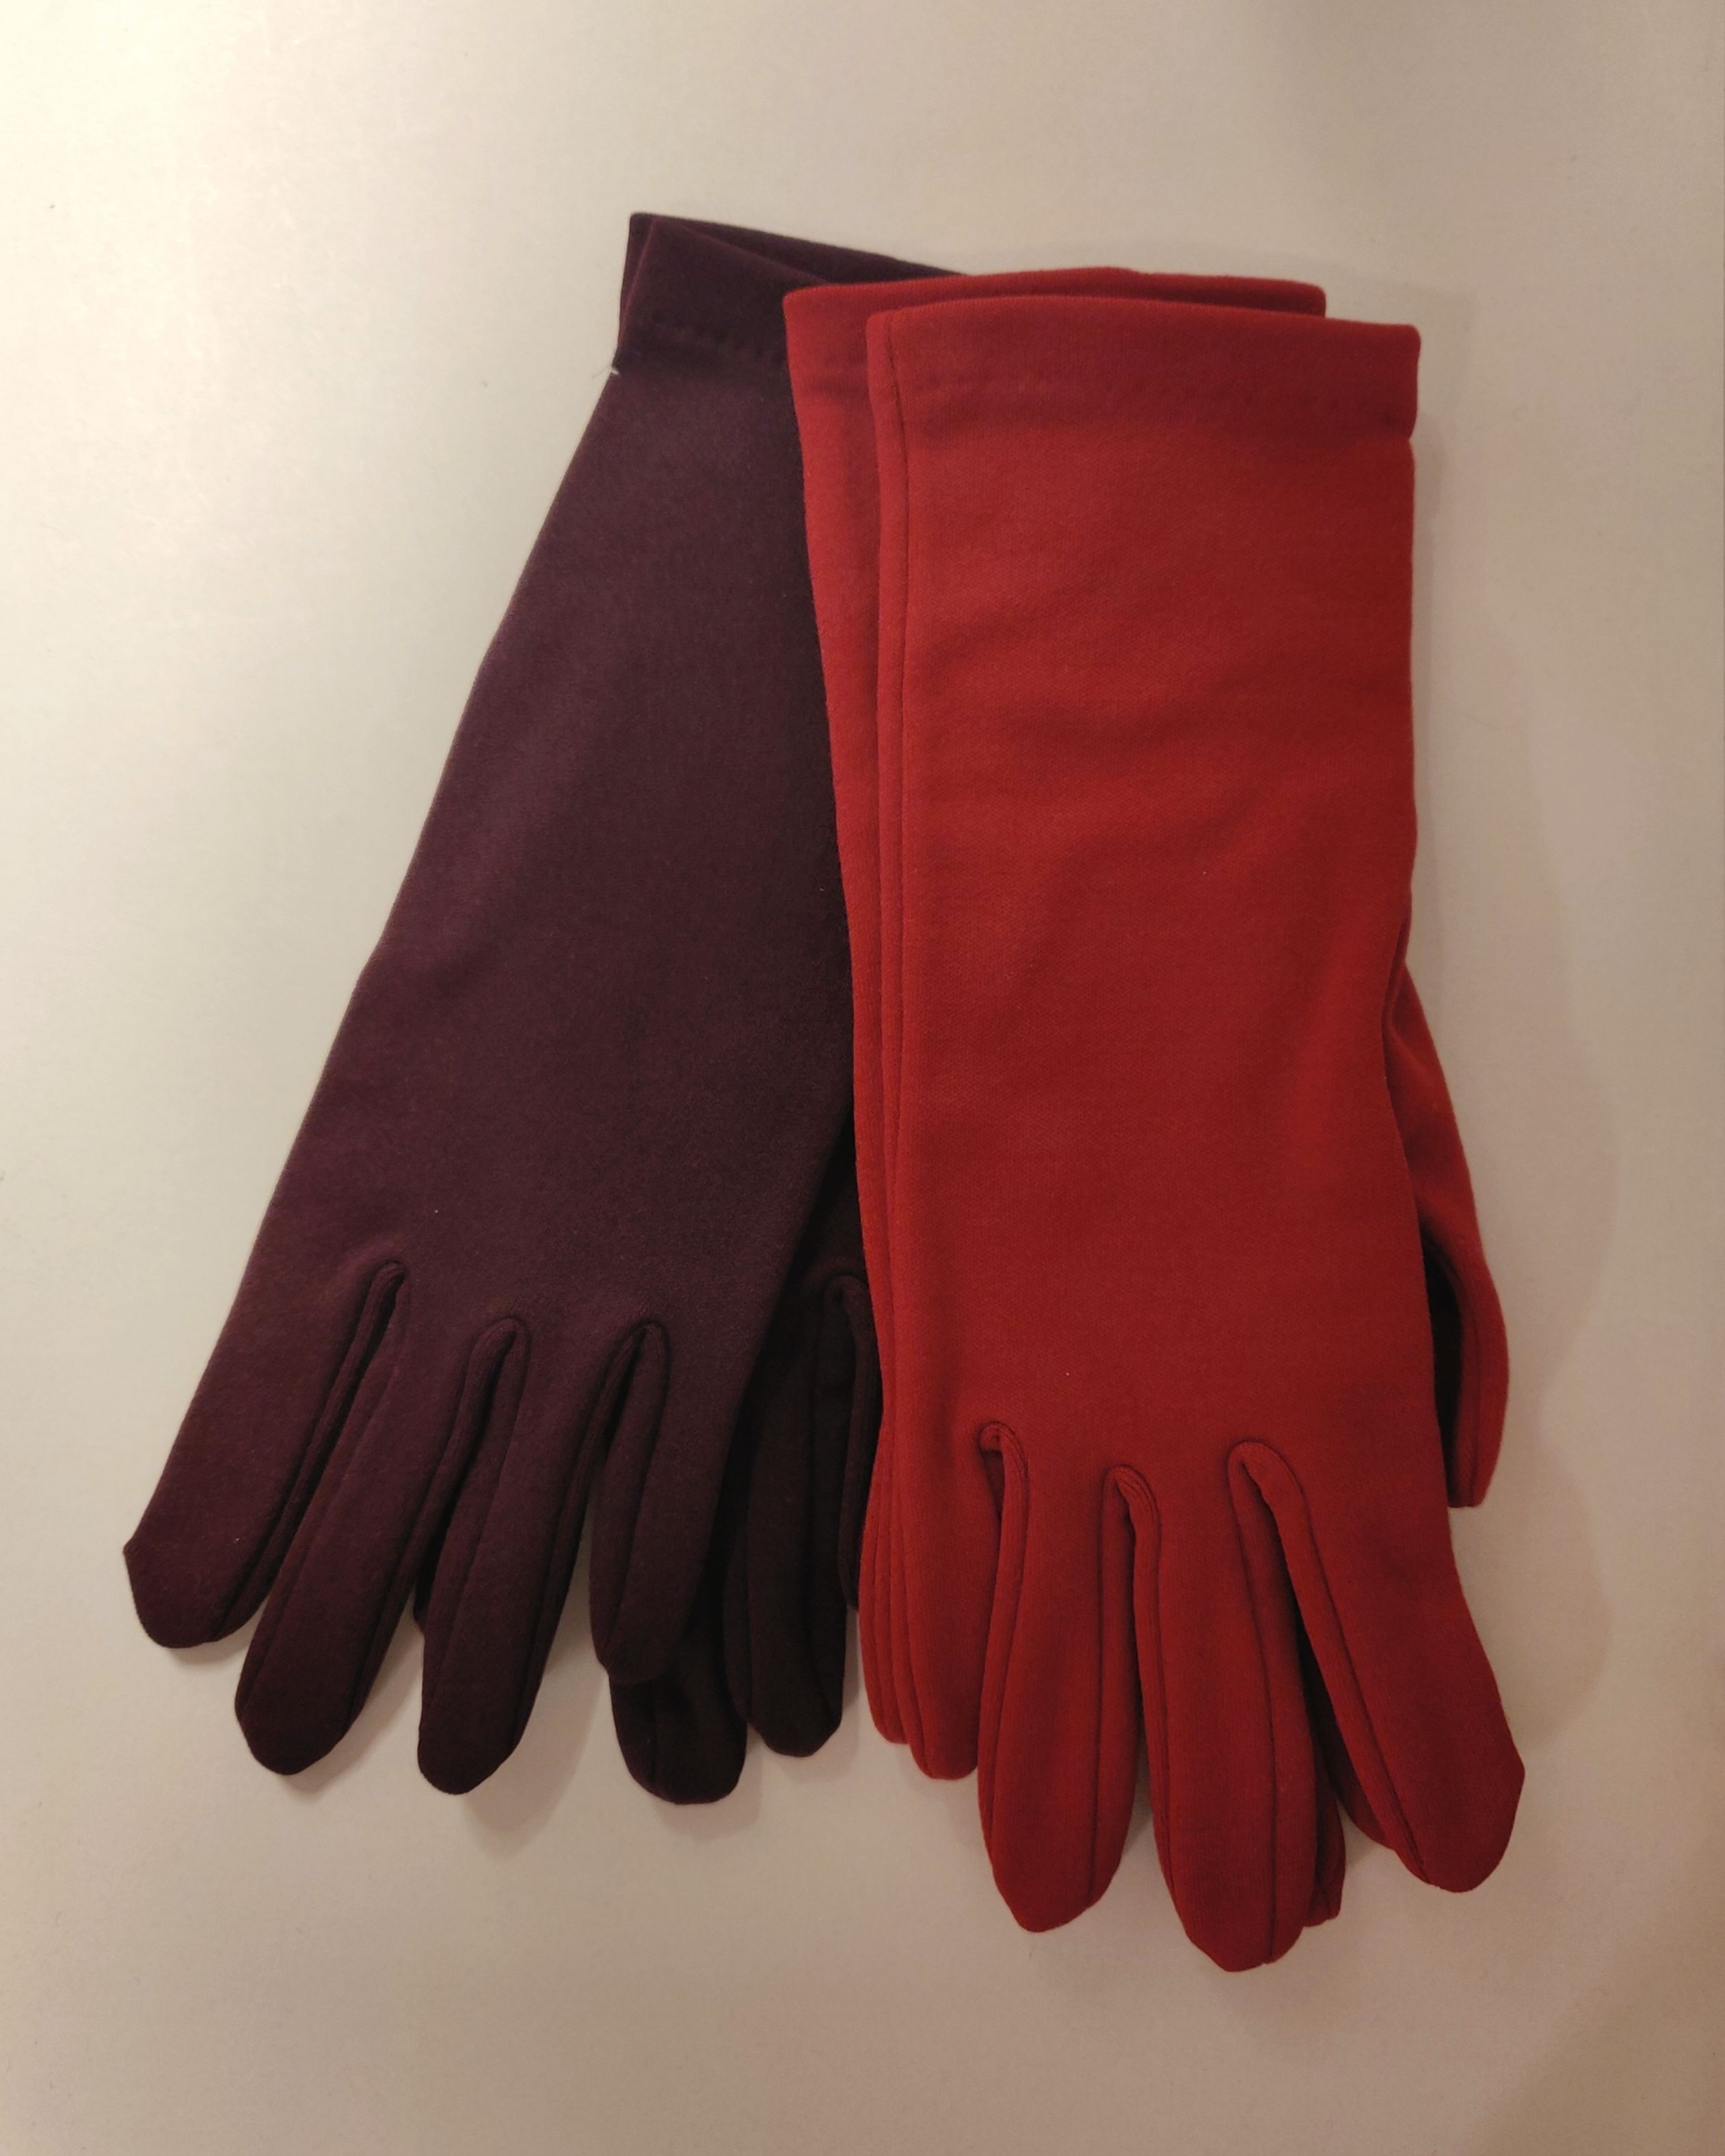 Crepe gloves